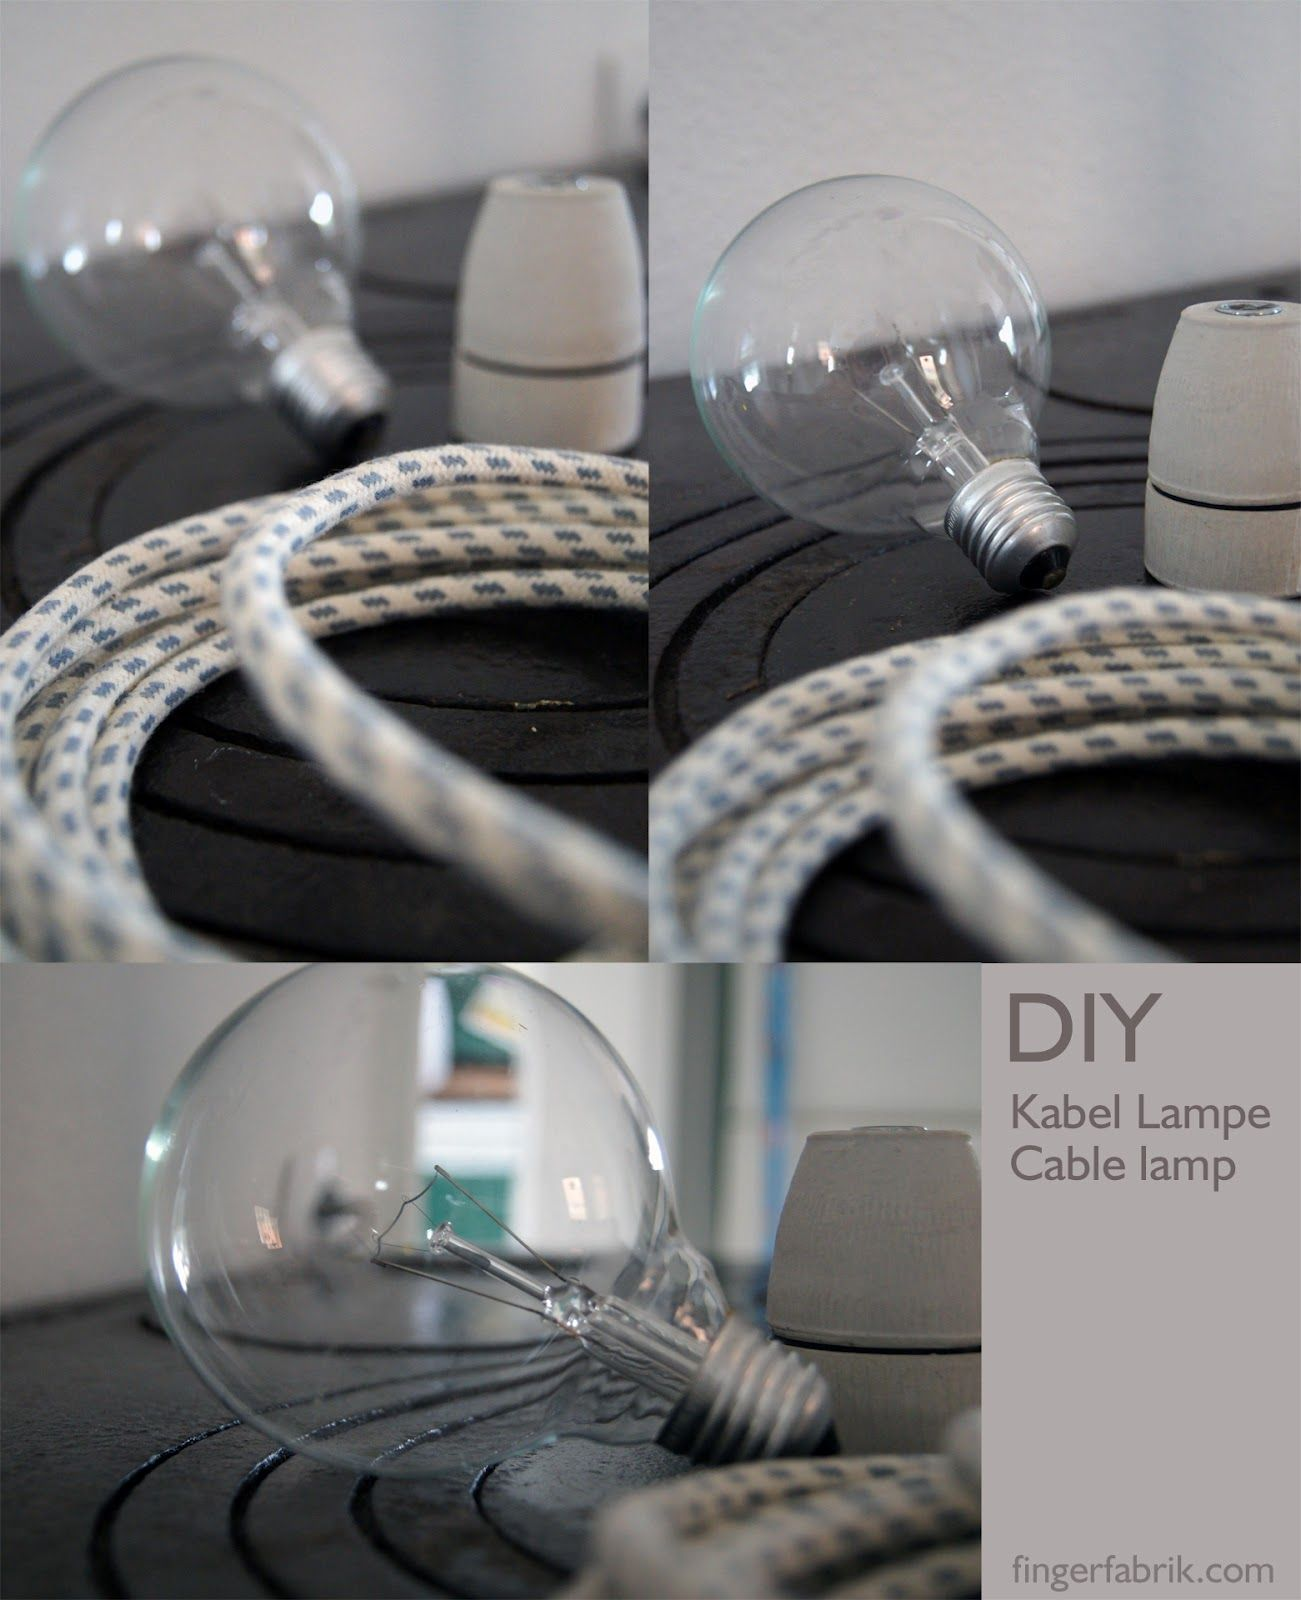 Diy Cable Lamp Tutorial With Textil Cable Kabellampe Selber